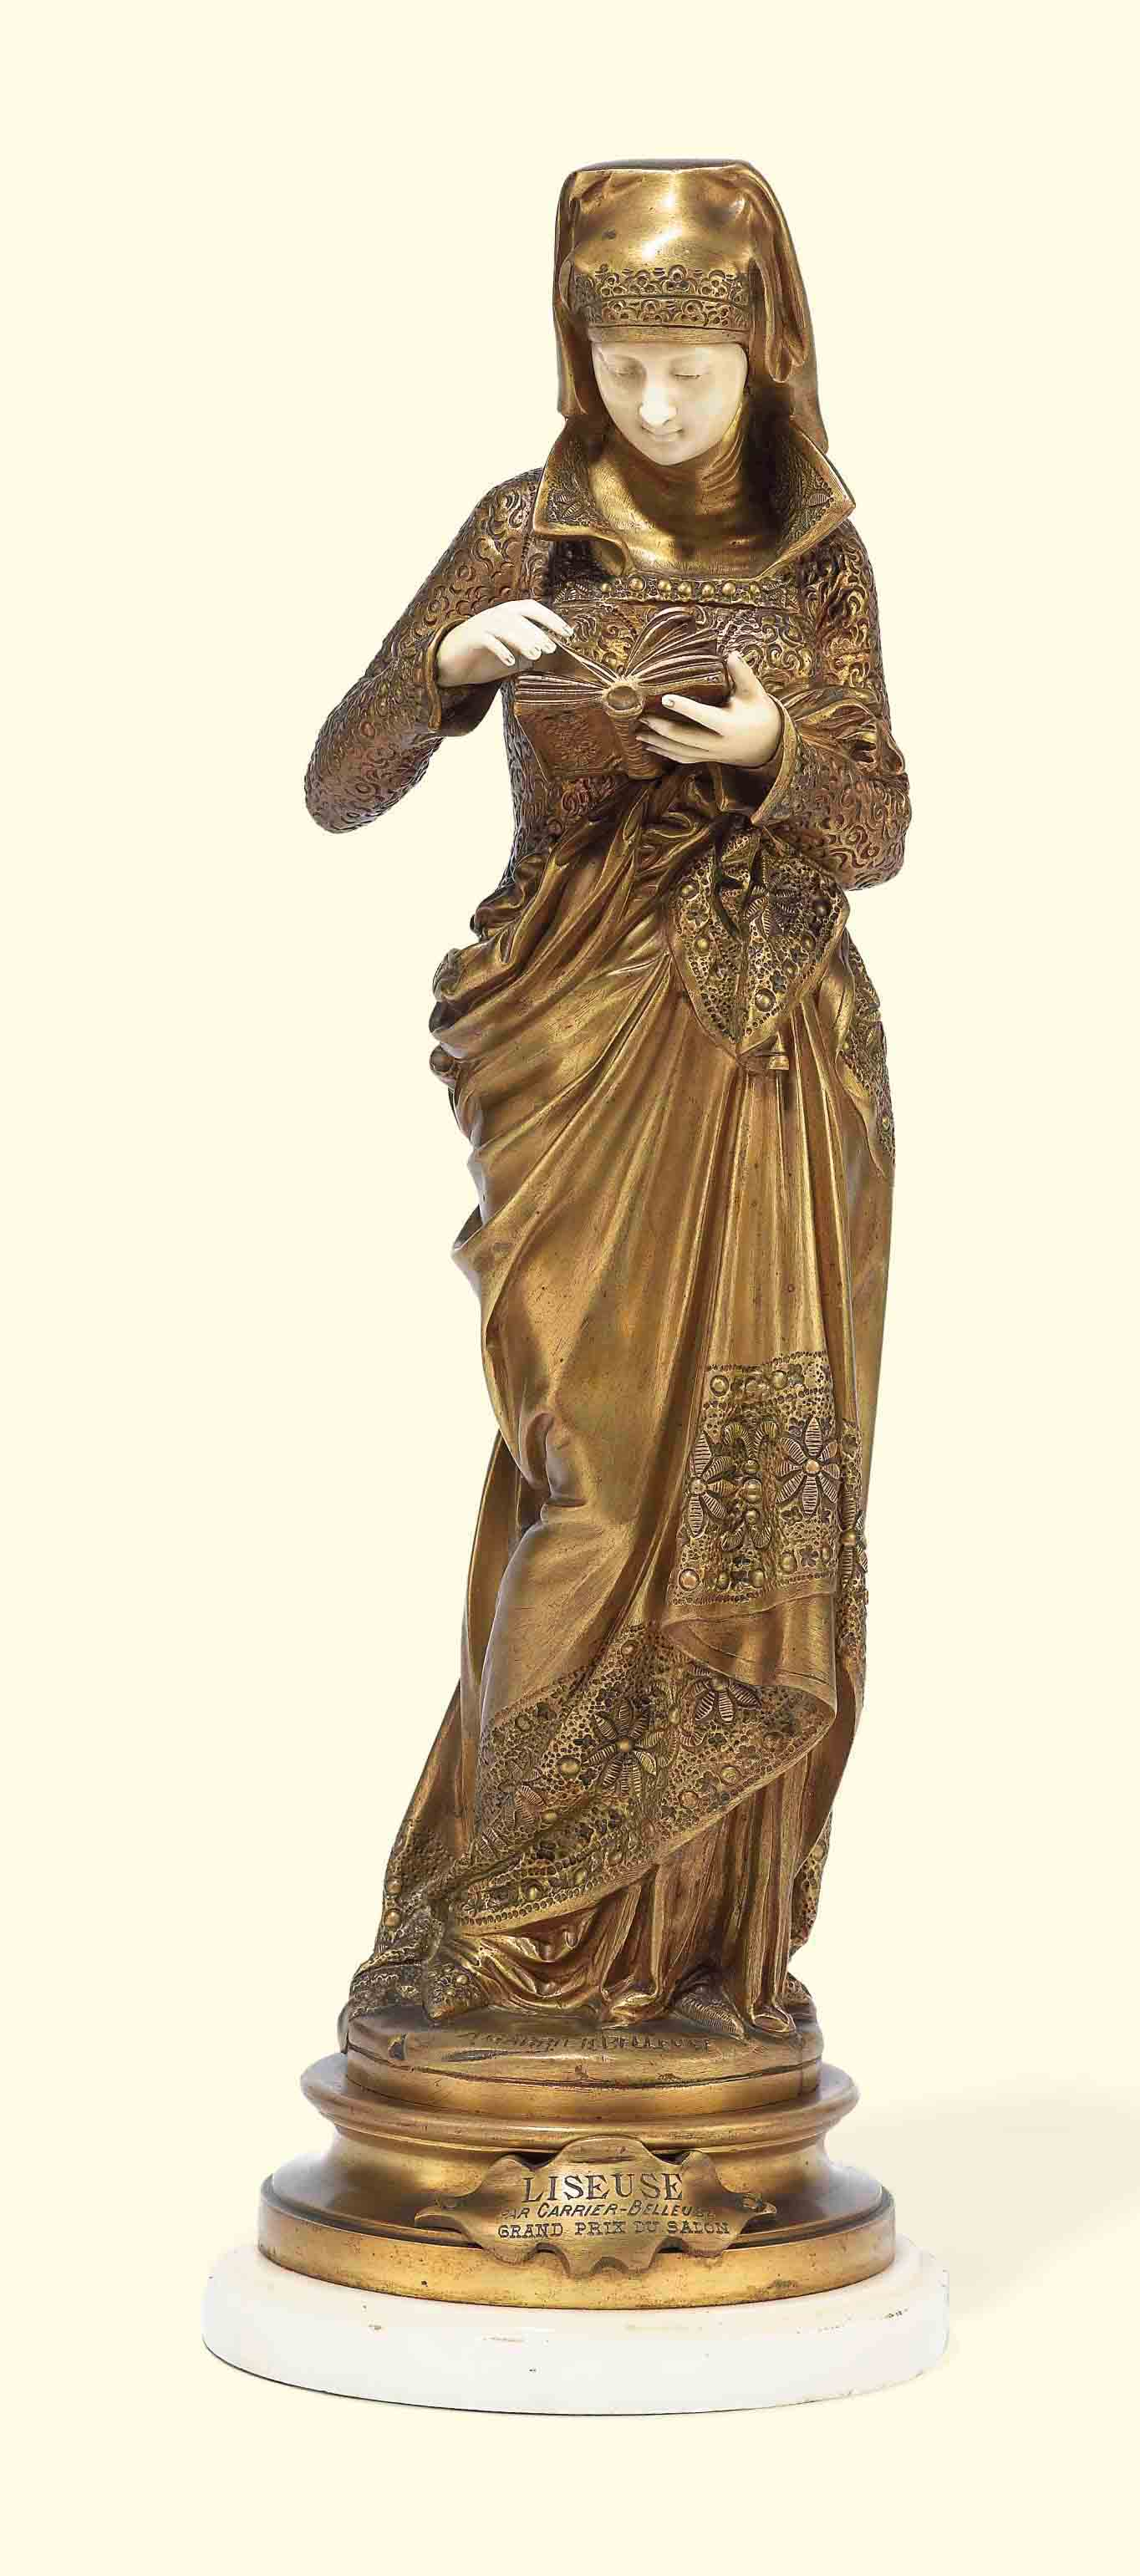 A FRENCH GILT-BRONZE AND IVORY FIGURE ENTITLED 'LISEUSE'